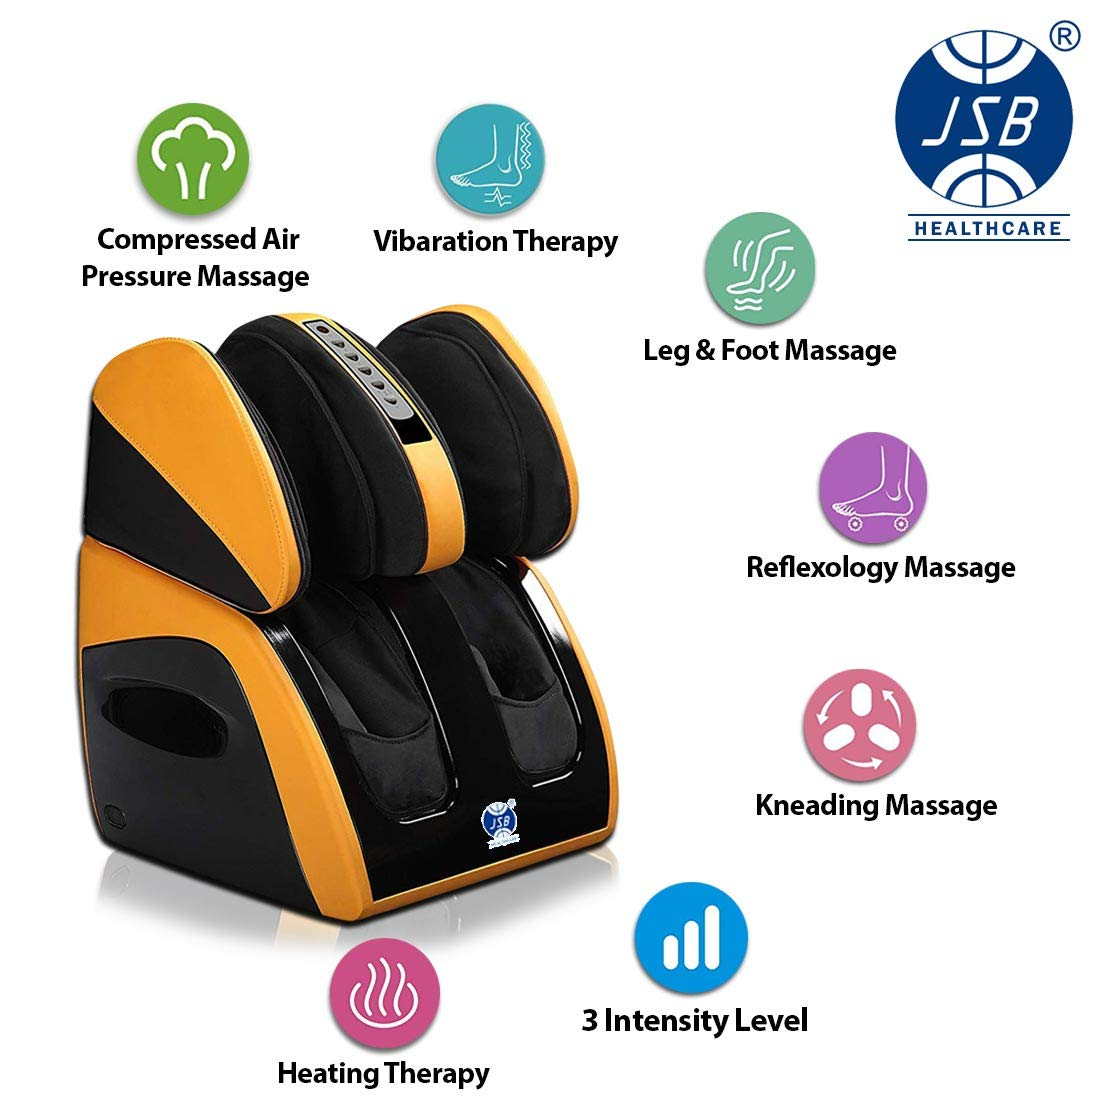 JSB HF111 Leg Foot Massager Machine for Calf Pain Relief & Knee Heating:  Amazon.in: Health & Personal Care